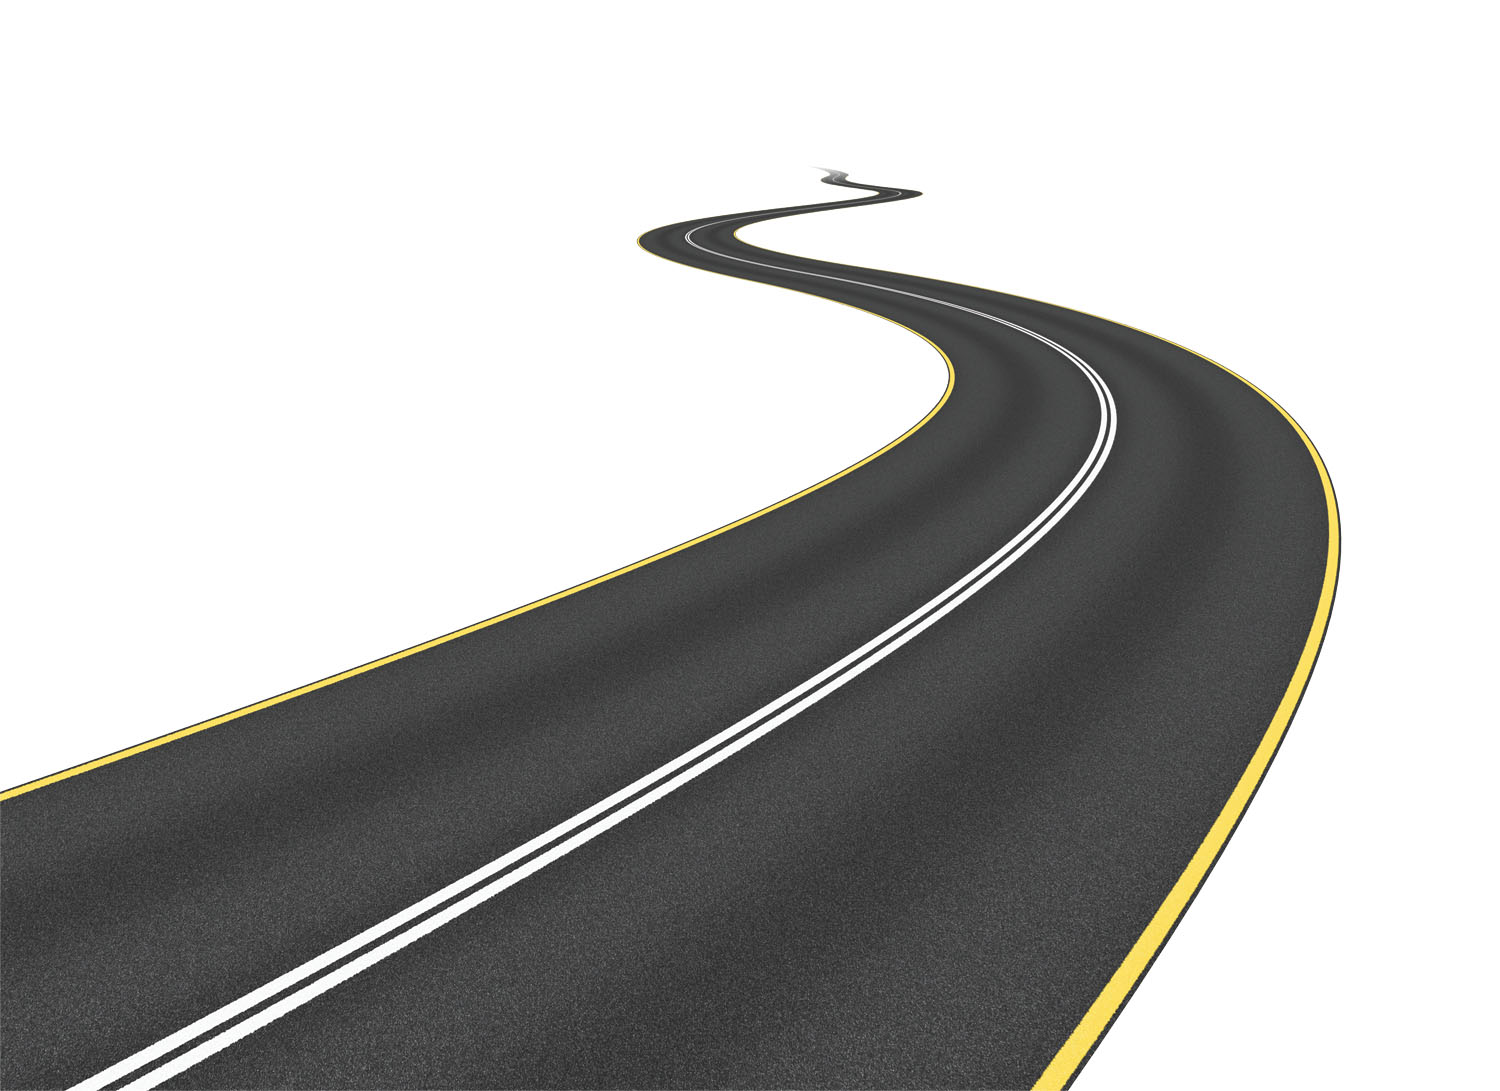 Long Curvy Road Clipart-Long Curvy Road Clipart-3